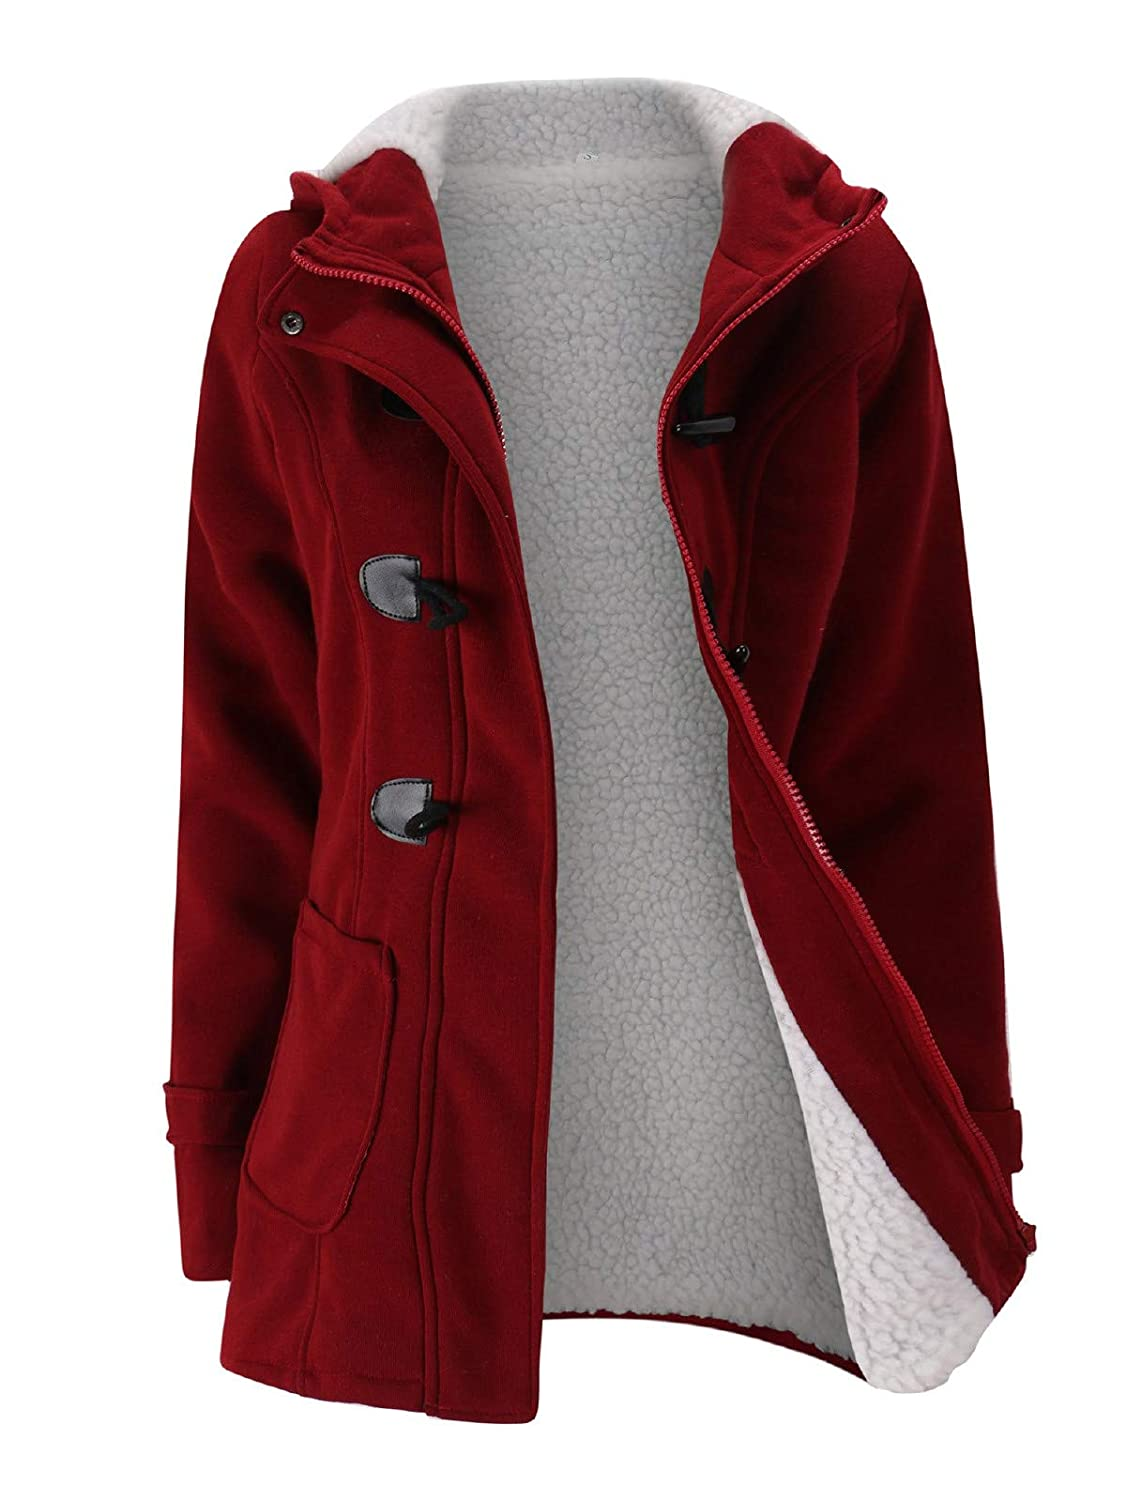 Verdusa Women's Slim Skinny Winter Warm Coat Hooded Jacket Outerwear